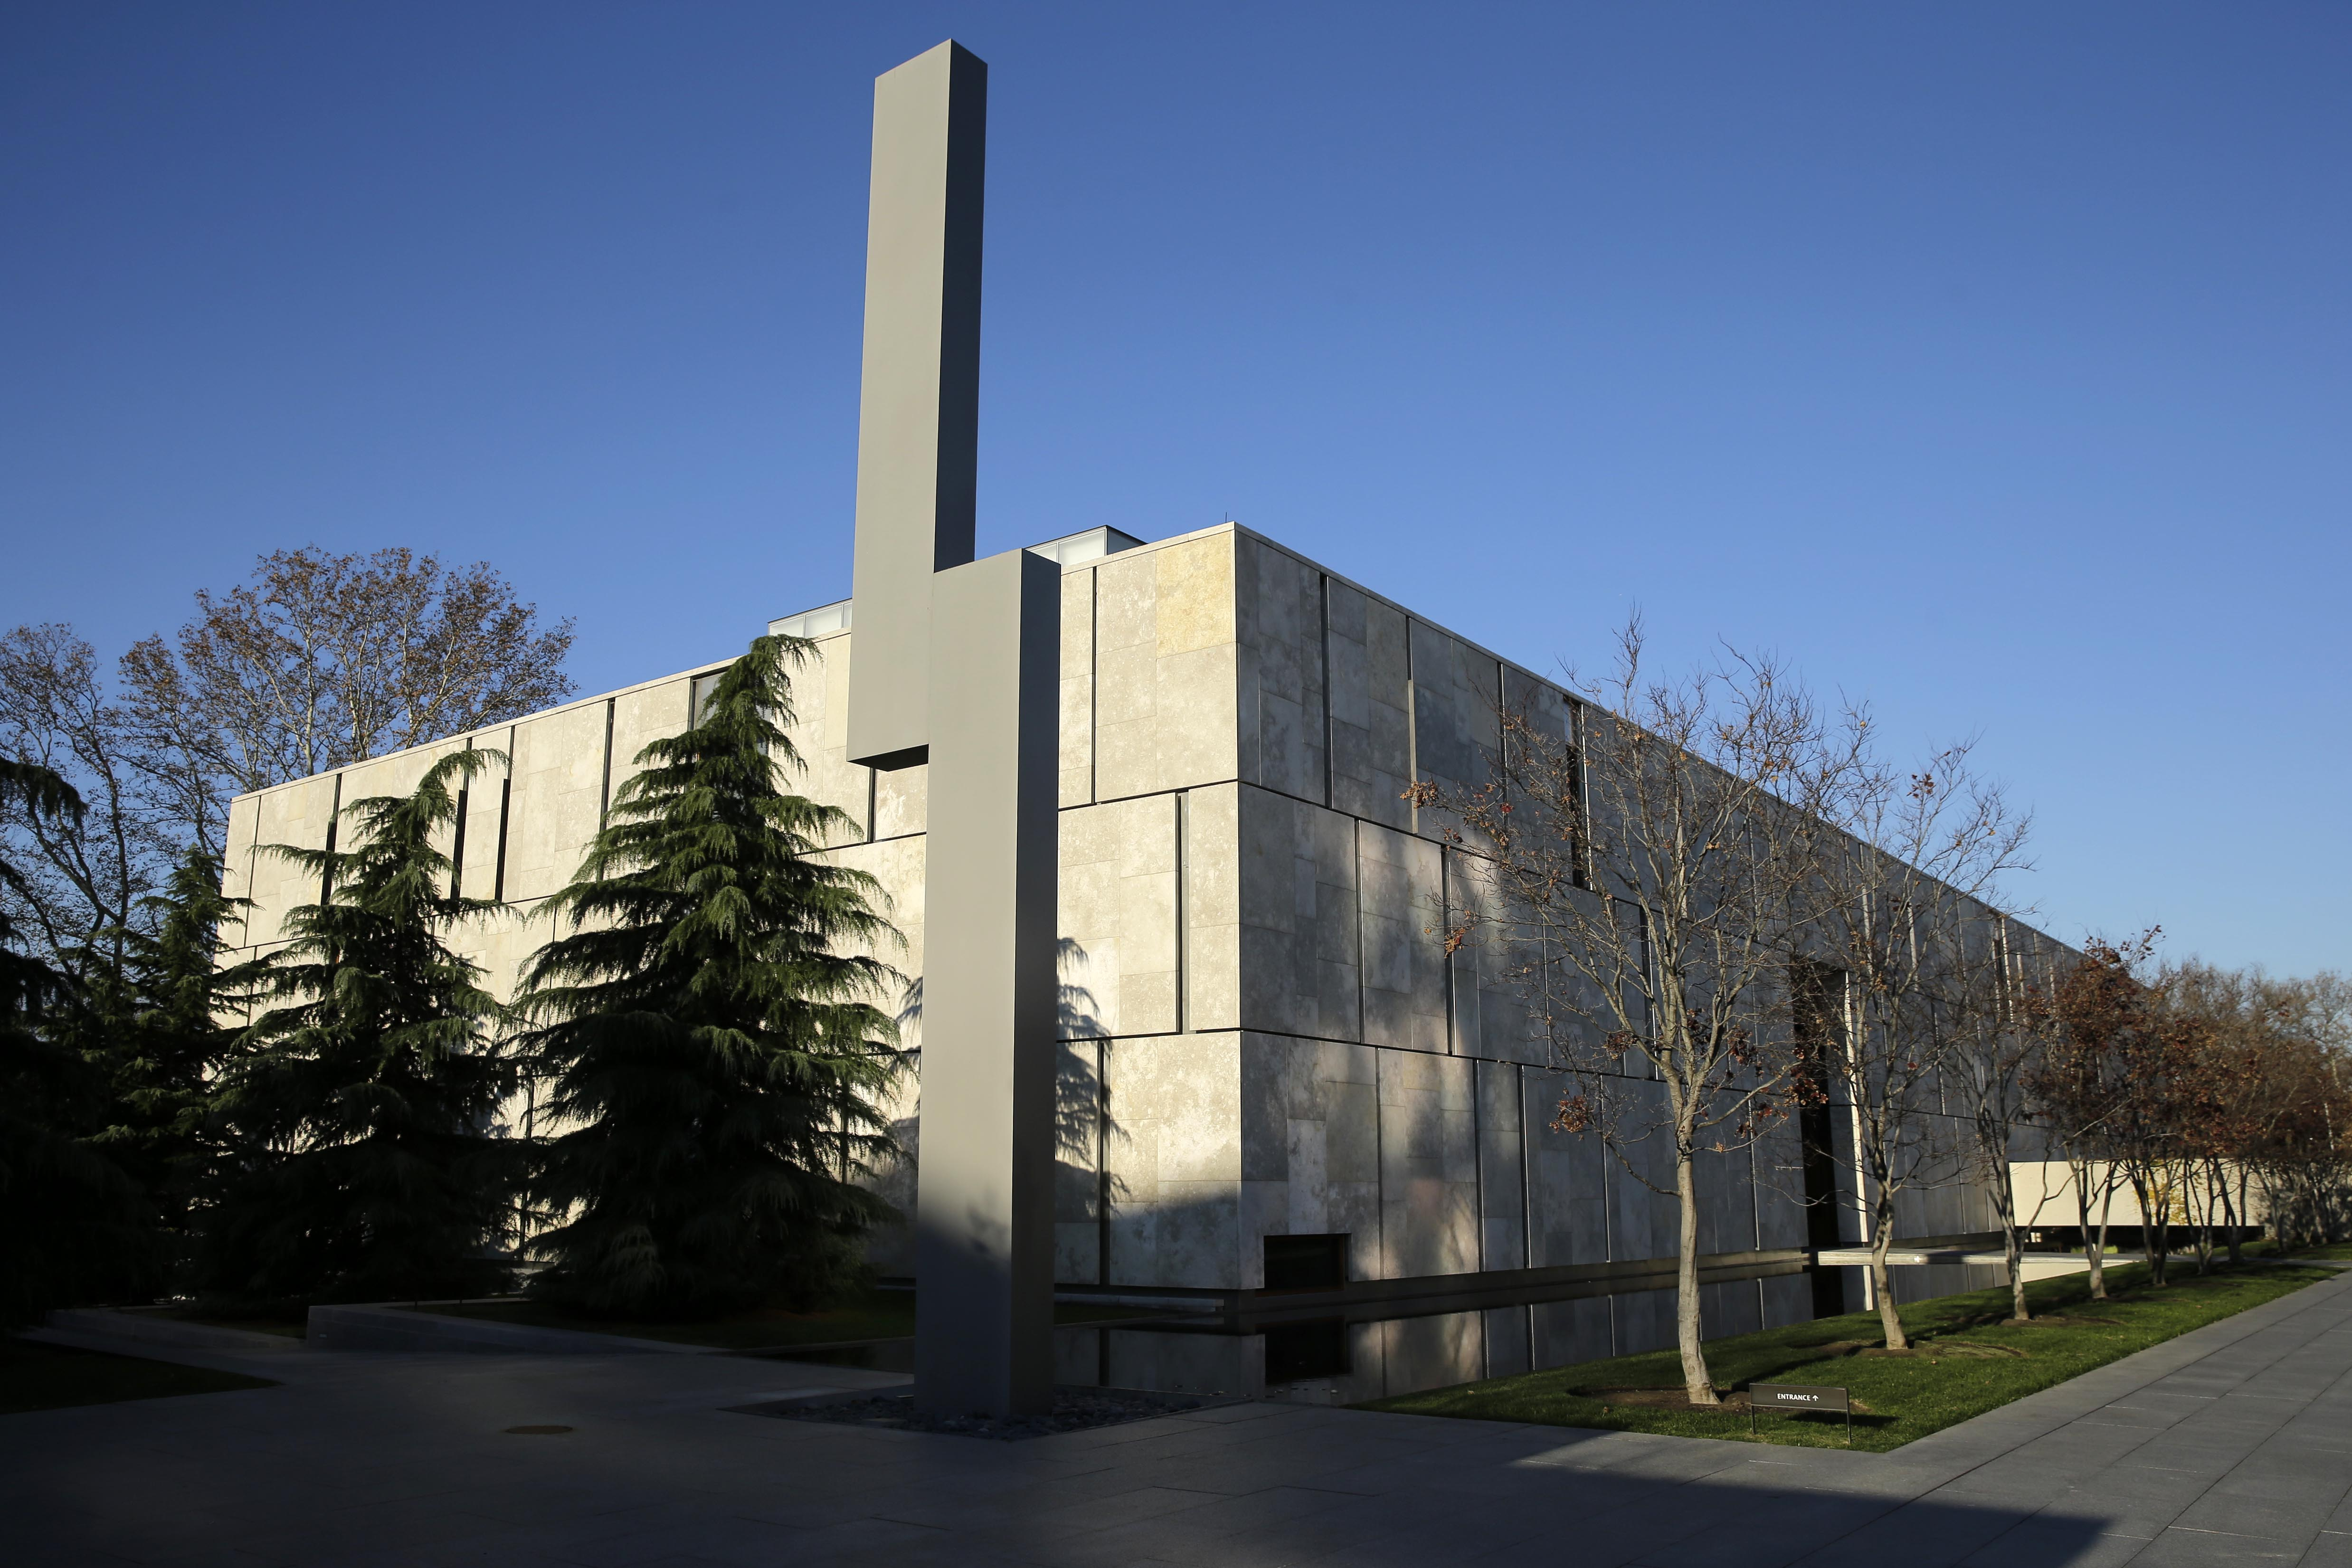 Barnes art museum looks to build on successful move